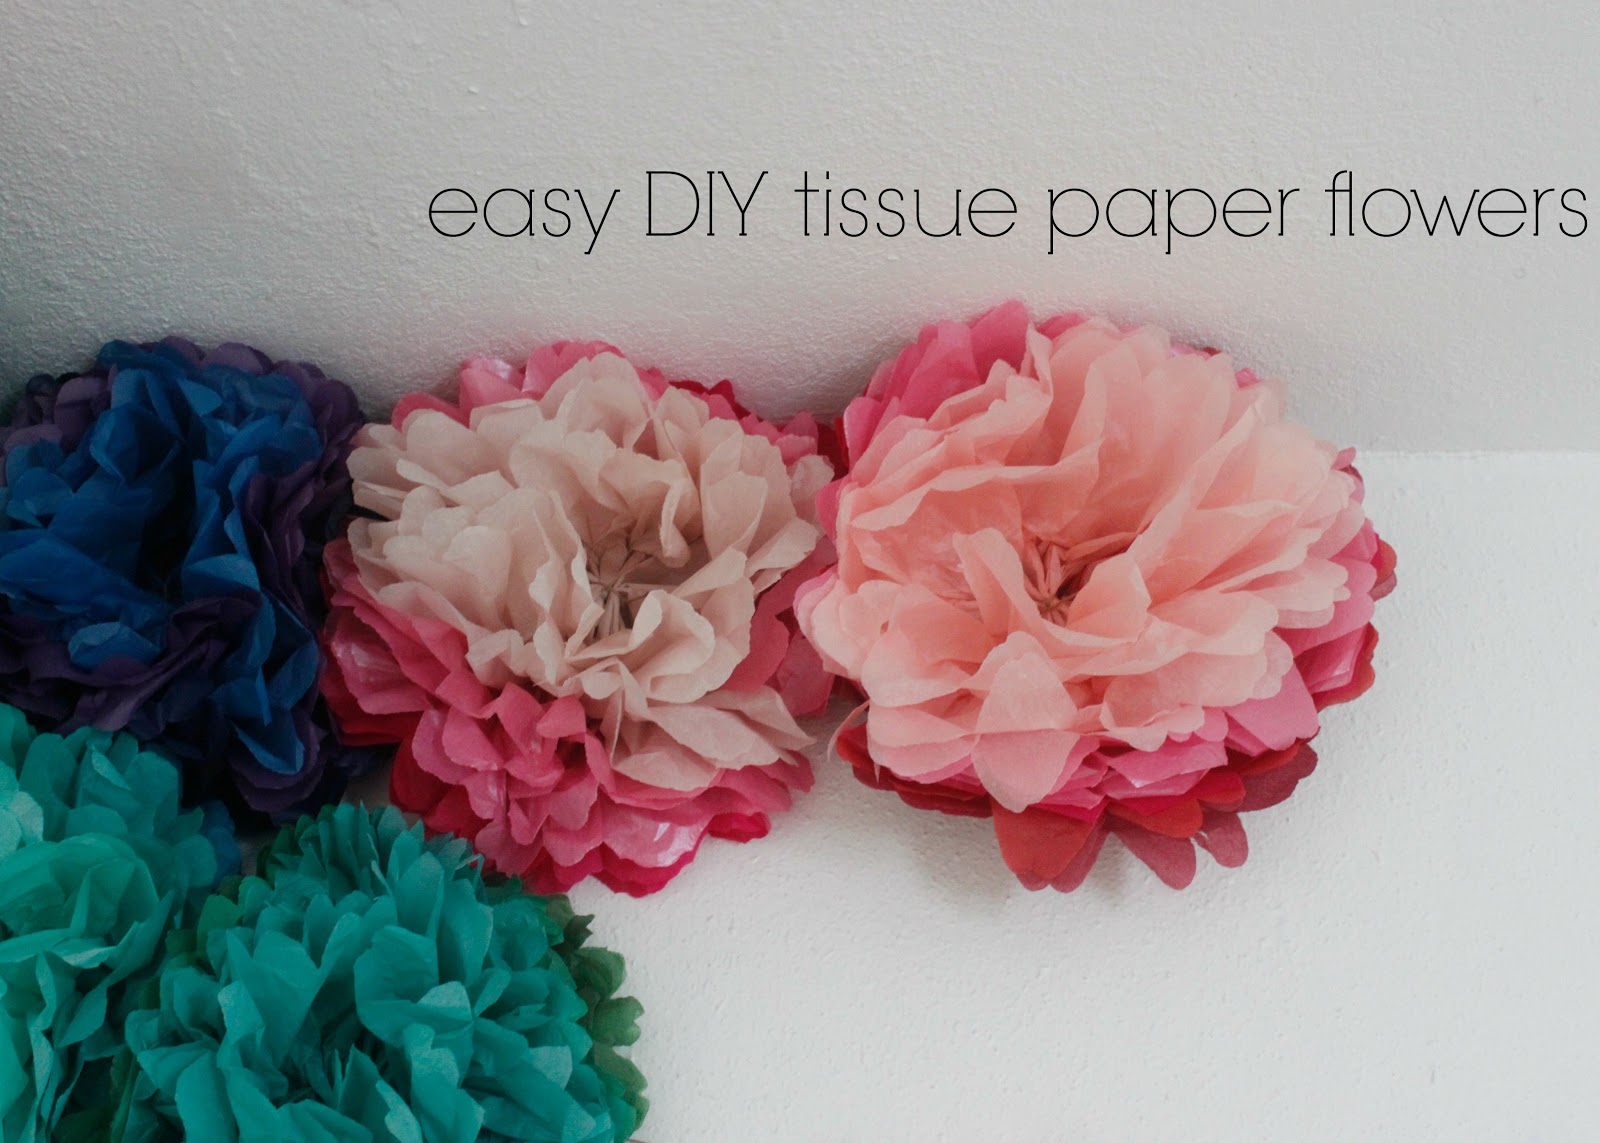 Camp Patton Tissue Paper Flower Tutorial